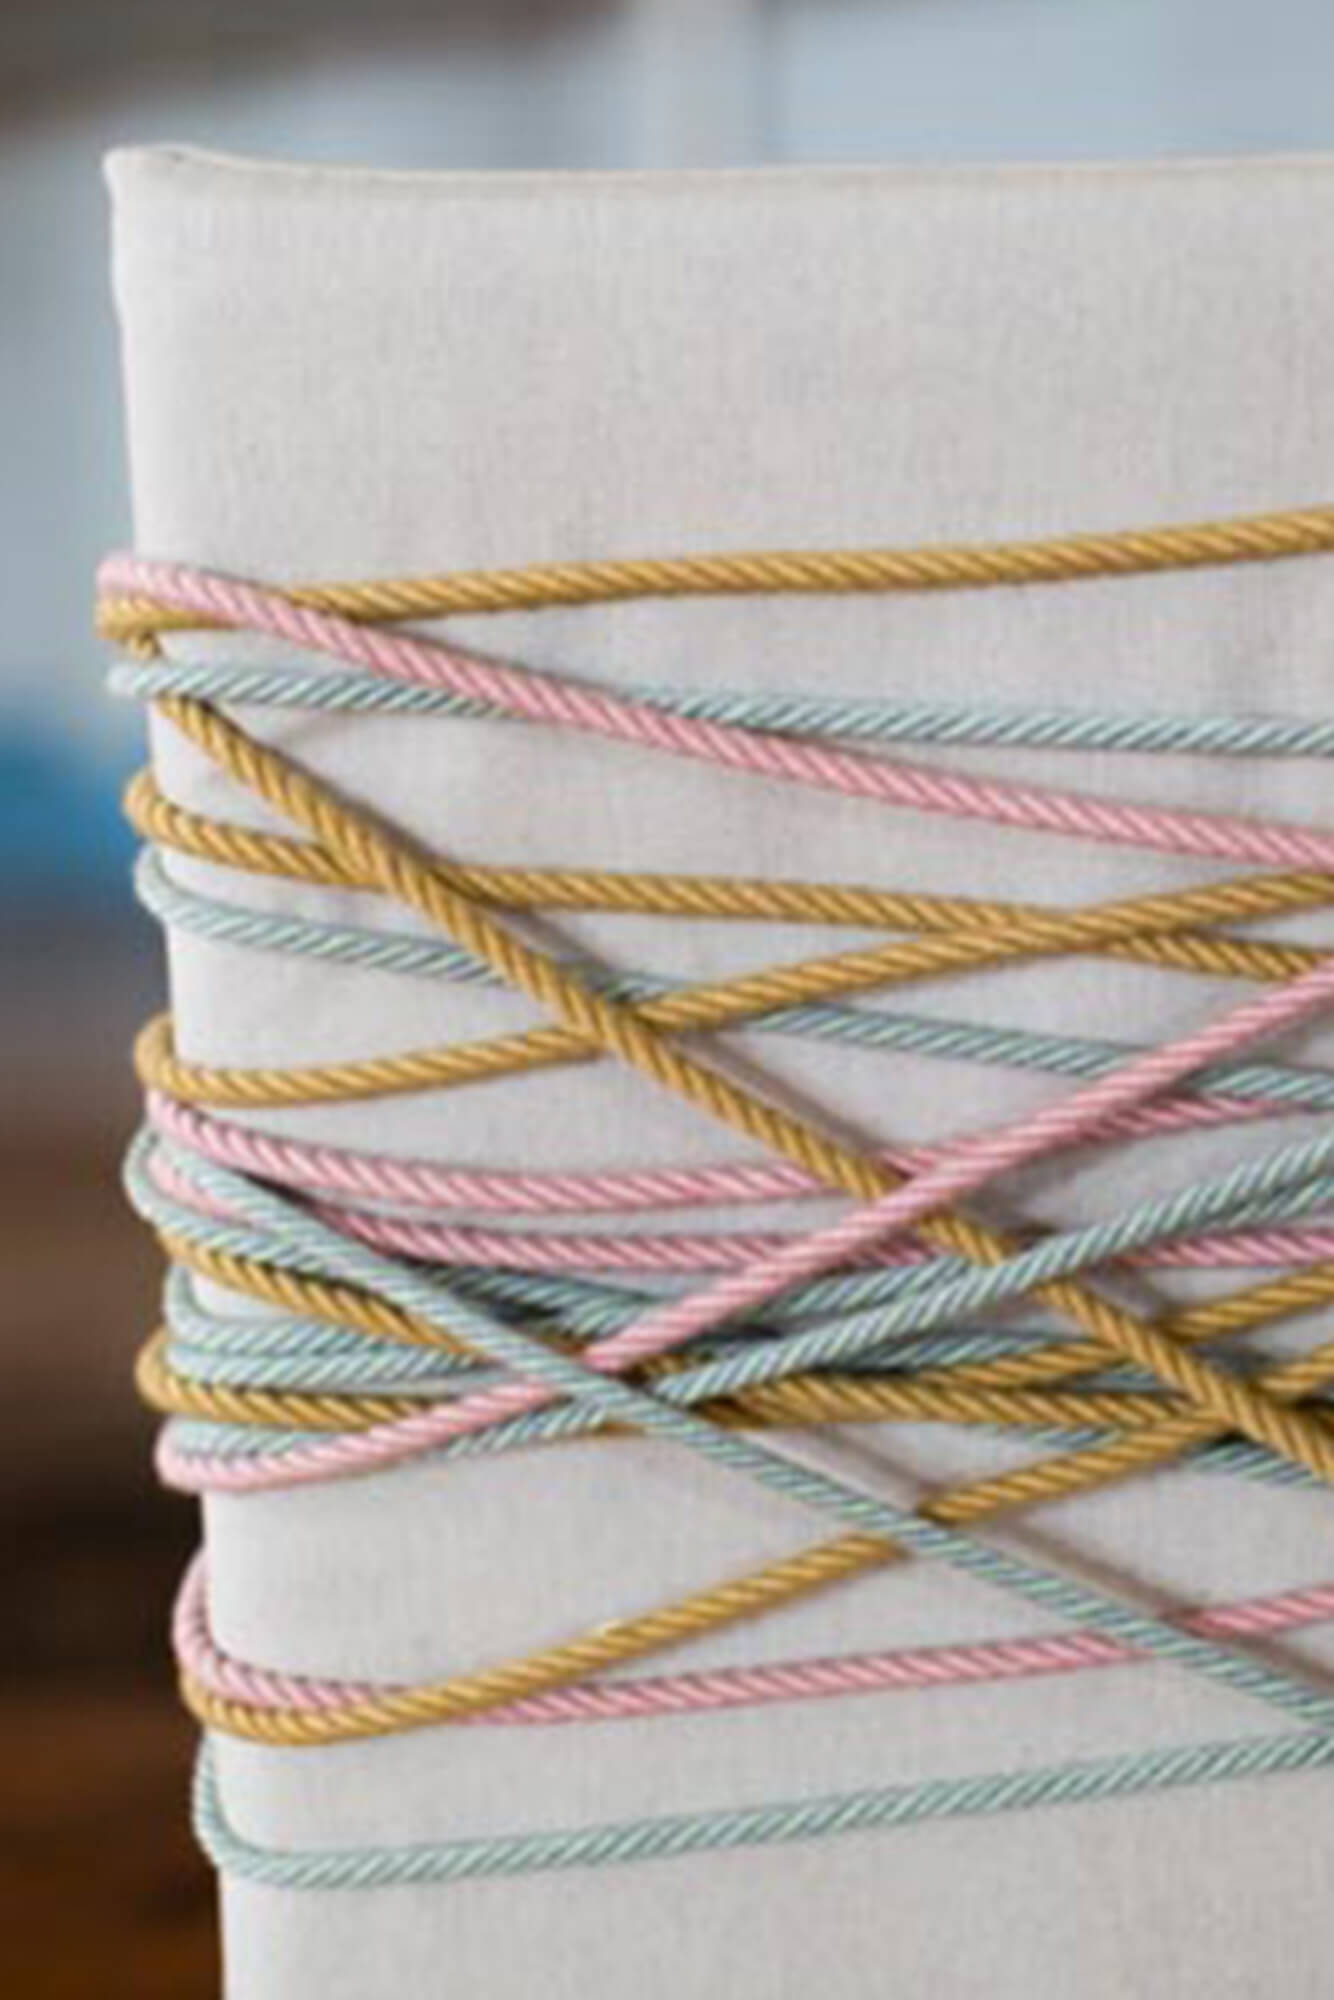 Colorful Sunbrella Rope is artfully wrapped around a beige upholstered chair